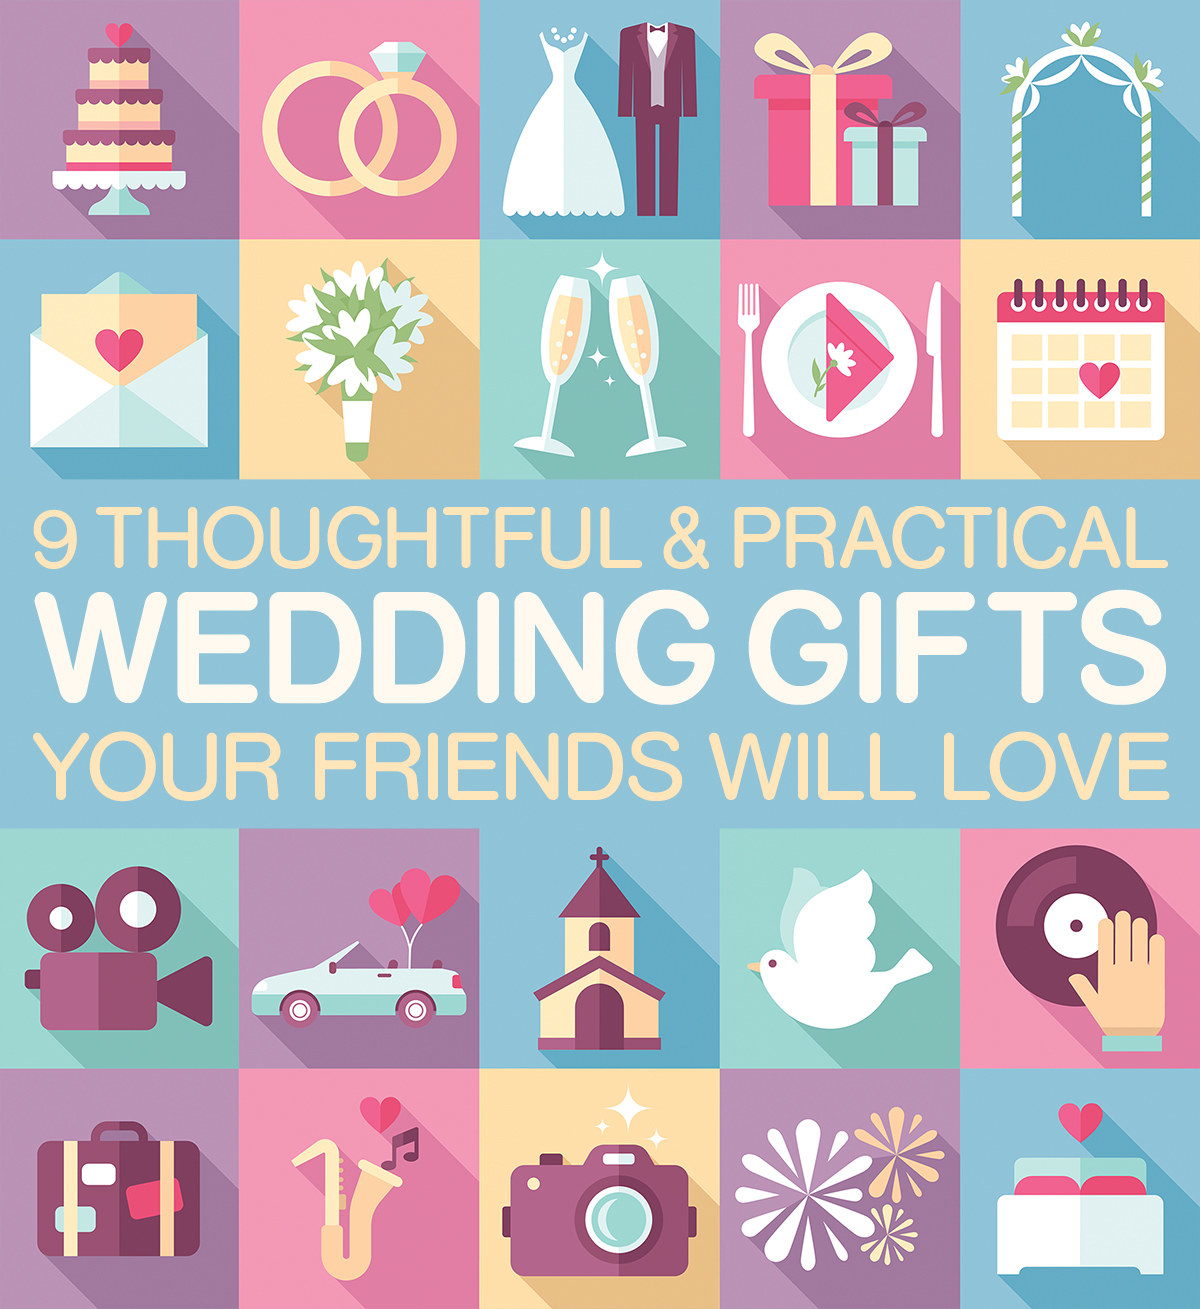 Practical Wedding Gifts: 9 Thoughtful And Practical Wedding Gifts That Won't Get